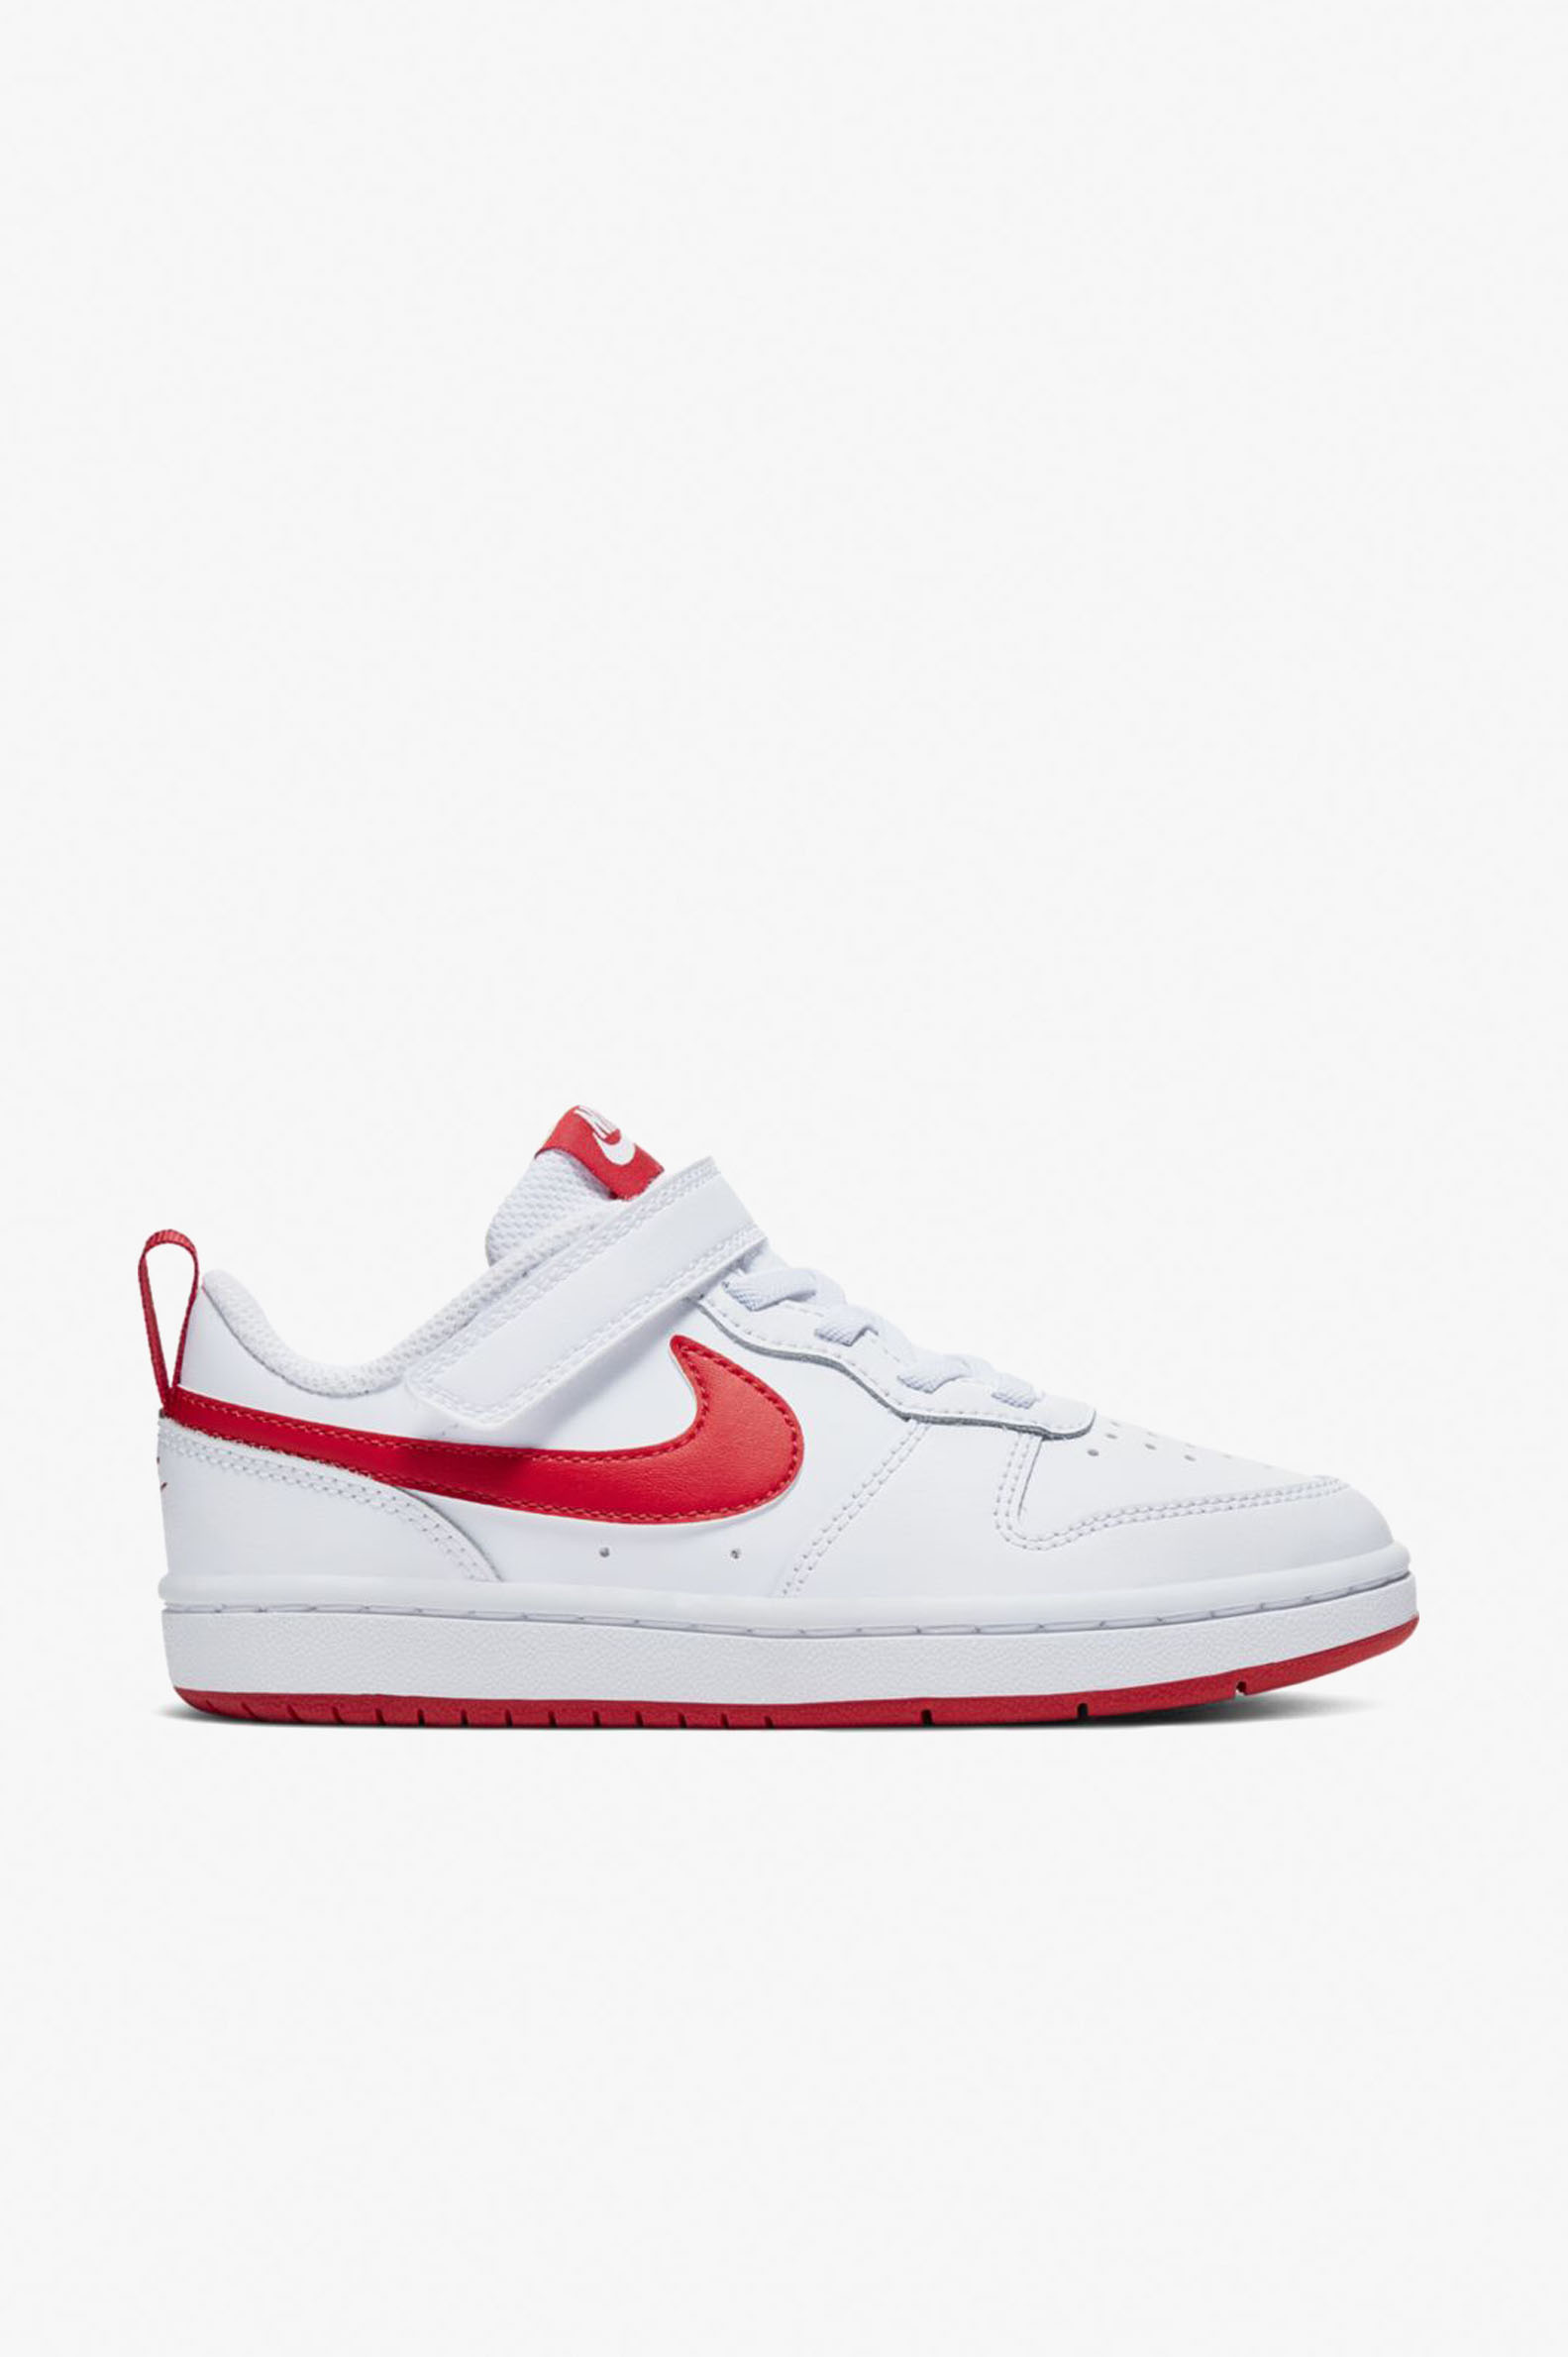 SAPATILHAS CASUAL NIKE COURT BOROUGH